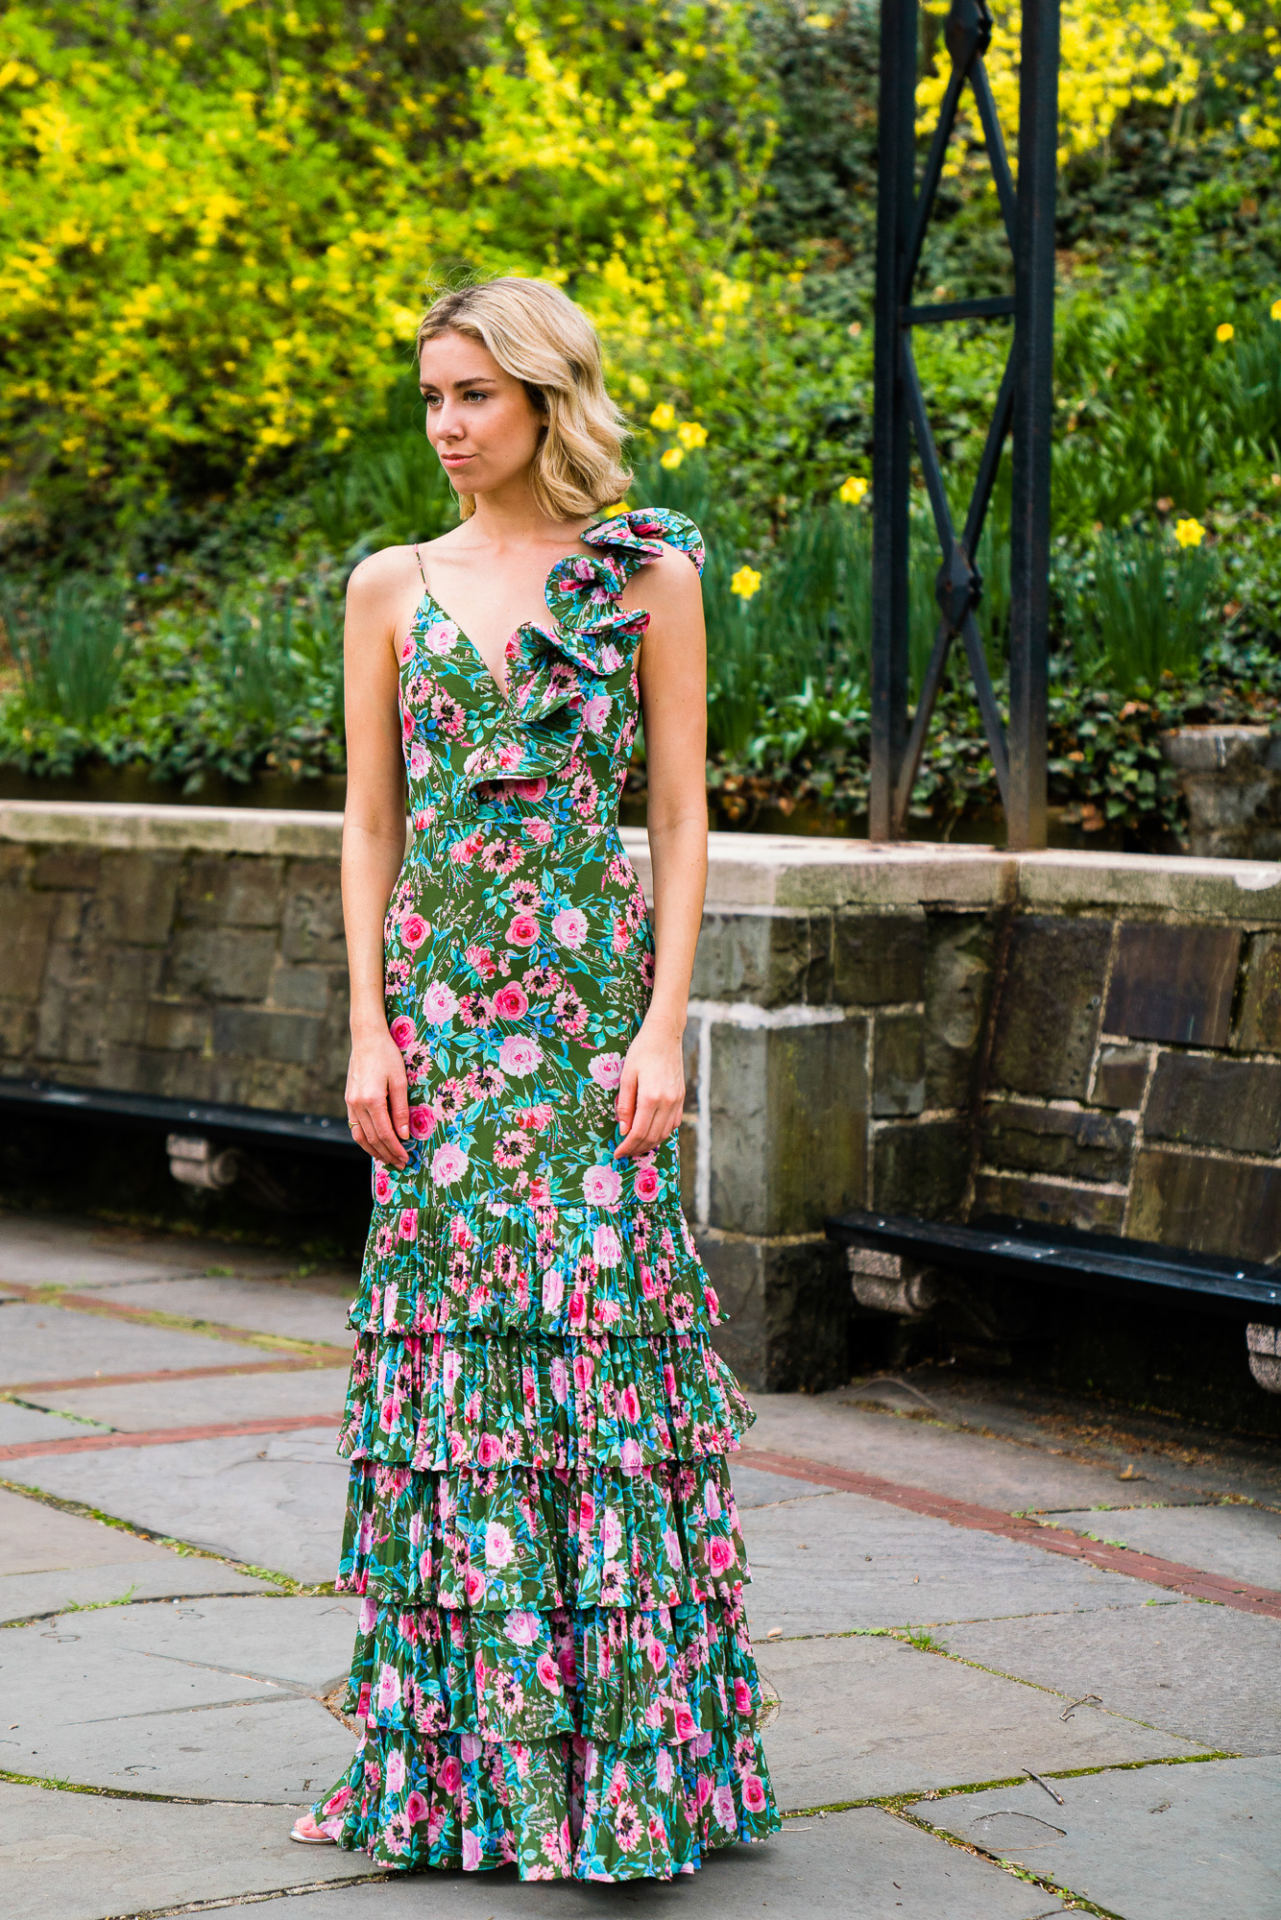 Floral is a bright spring option for a wedding guest.